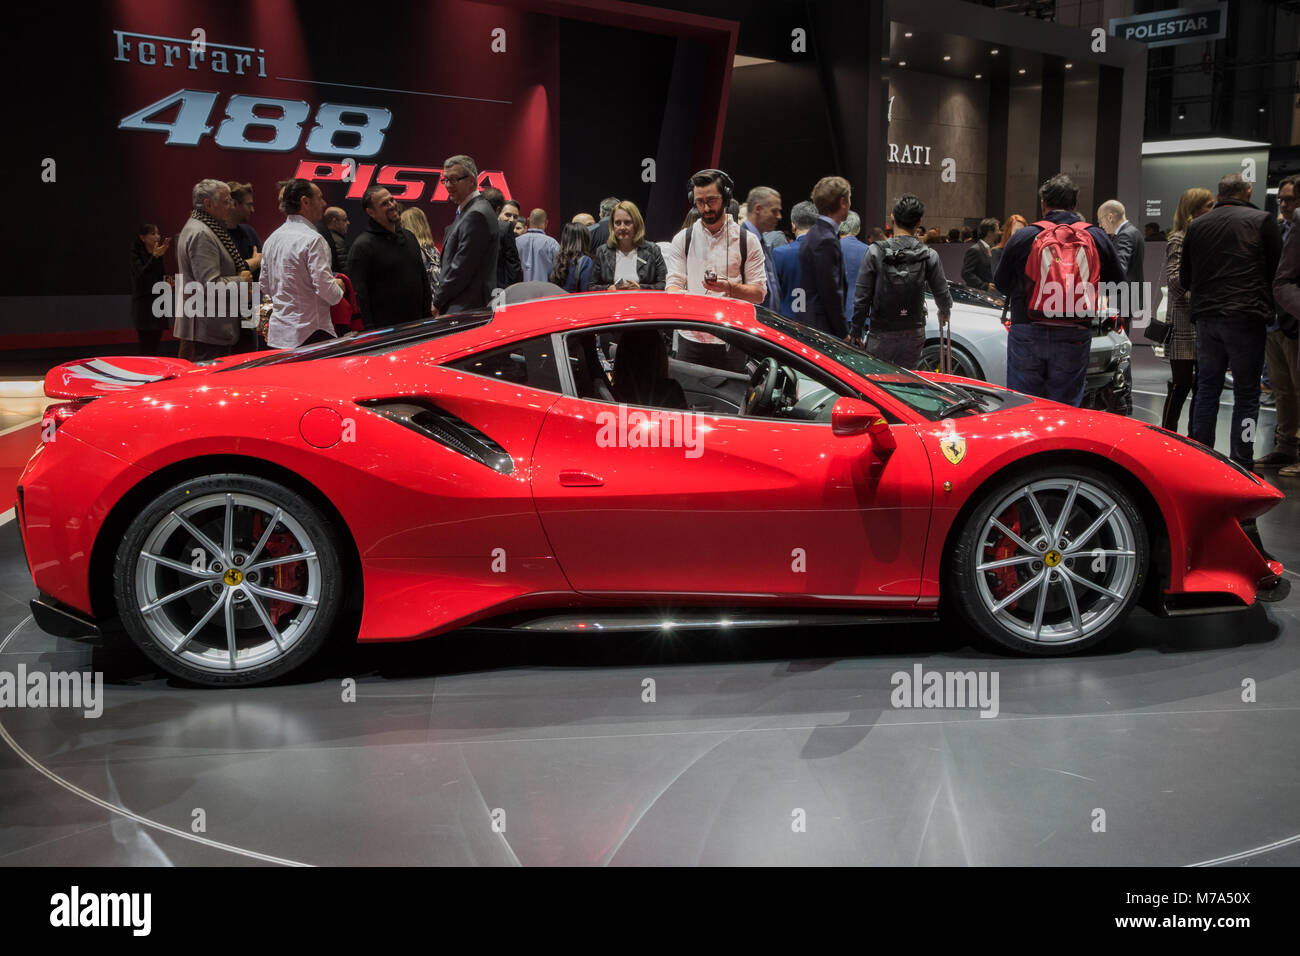 geneva switzerland march 6 2018 new ferrari 488 pista sports car stock photo 176629738 alamy. Black Bedroom Furniture Sets. Home Design Ideas